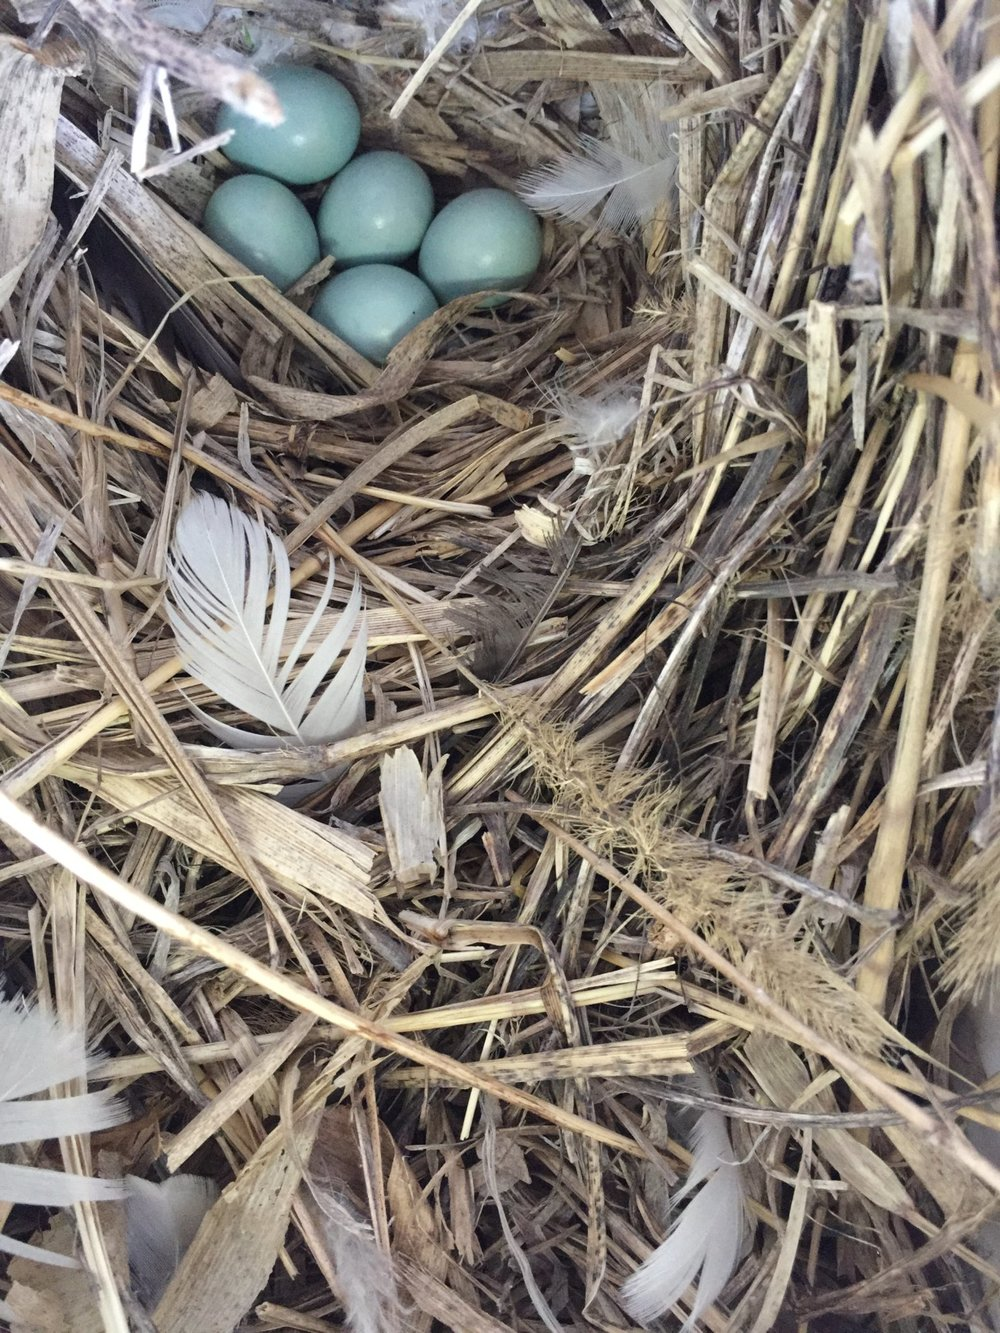 European Starling.  Nest is made of rough grasses & feathers. Eggs are larger than robins. Exotic & invasive.  Remove nest!